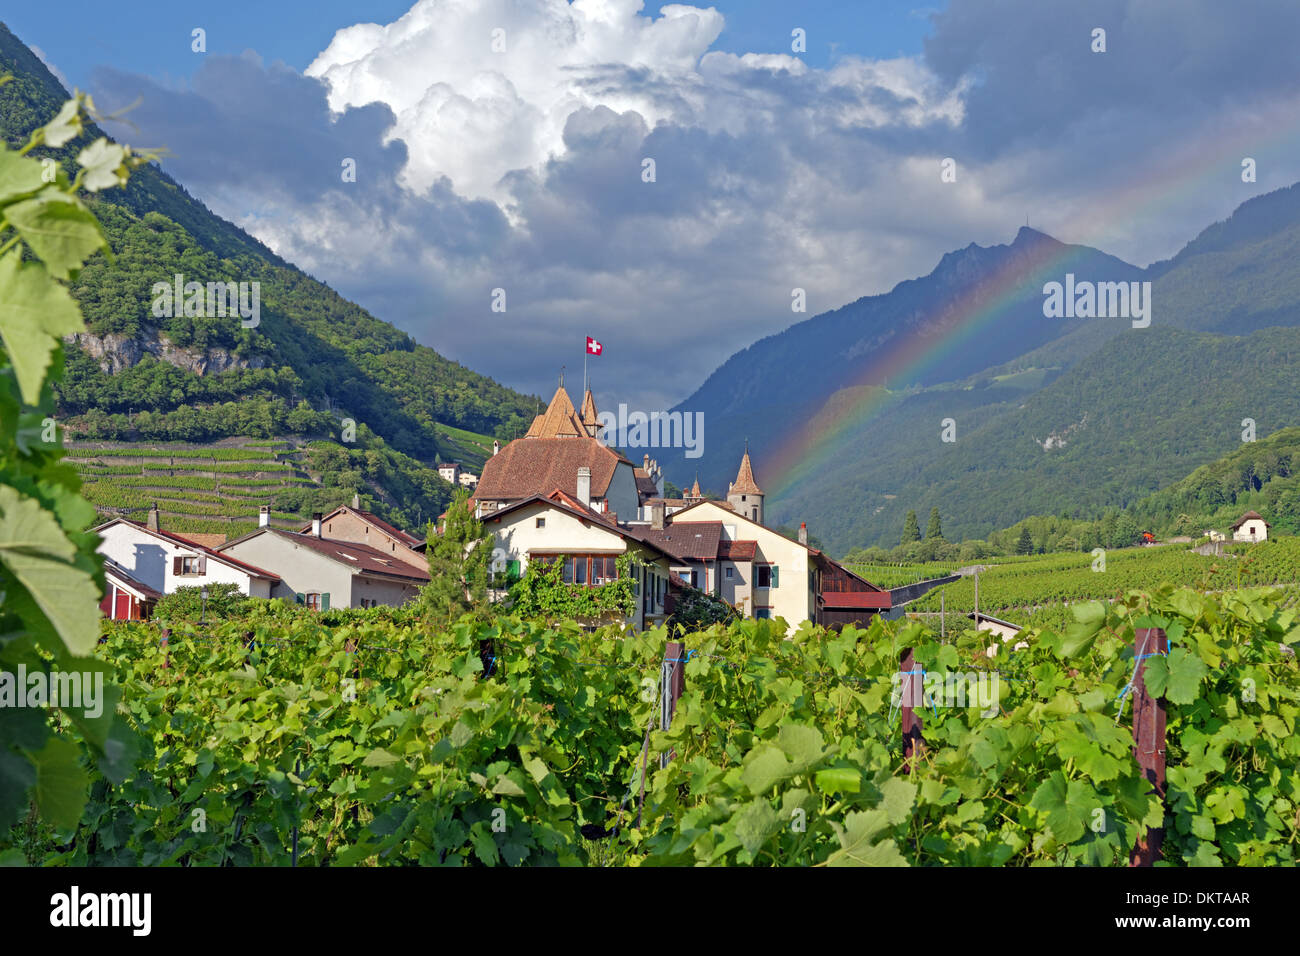 Europe Switzerland CH Vaud Aigle Chemin du Chateau castle Aigle castle place wine vineyards rainbows architecture Stock Photo